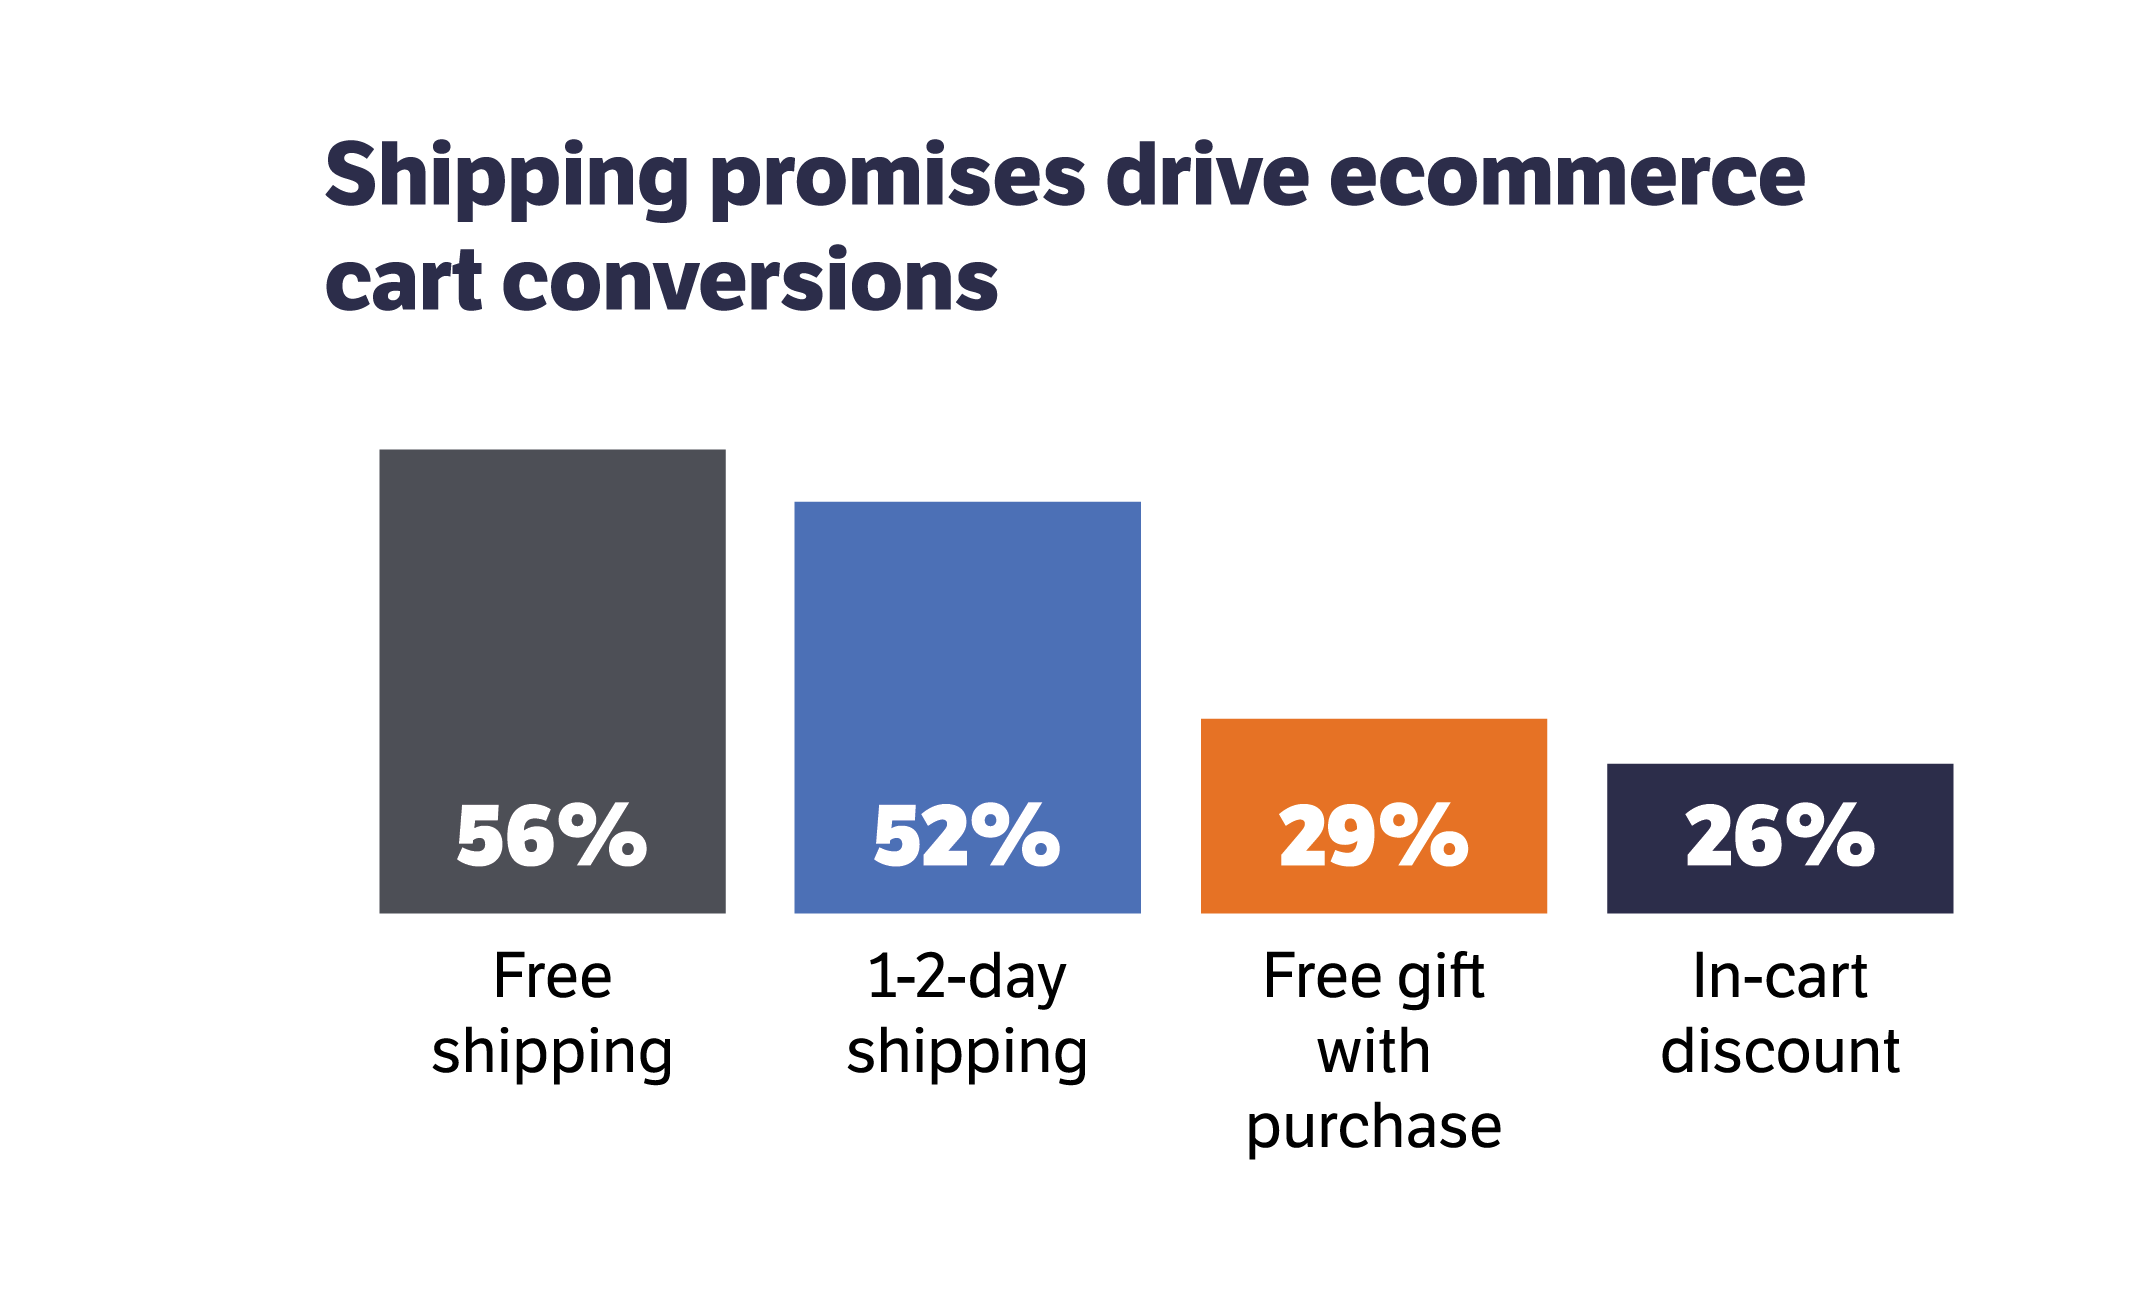 Cart conversions driven by free shipping (56%), 2 day shipping (52%), free gift (29%), and discount (26%)